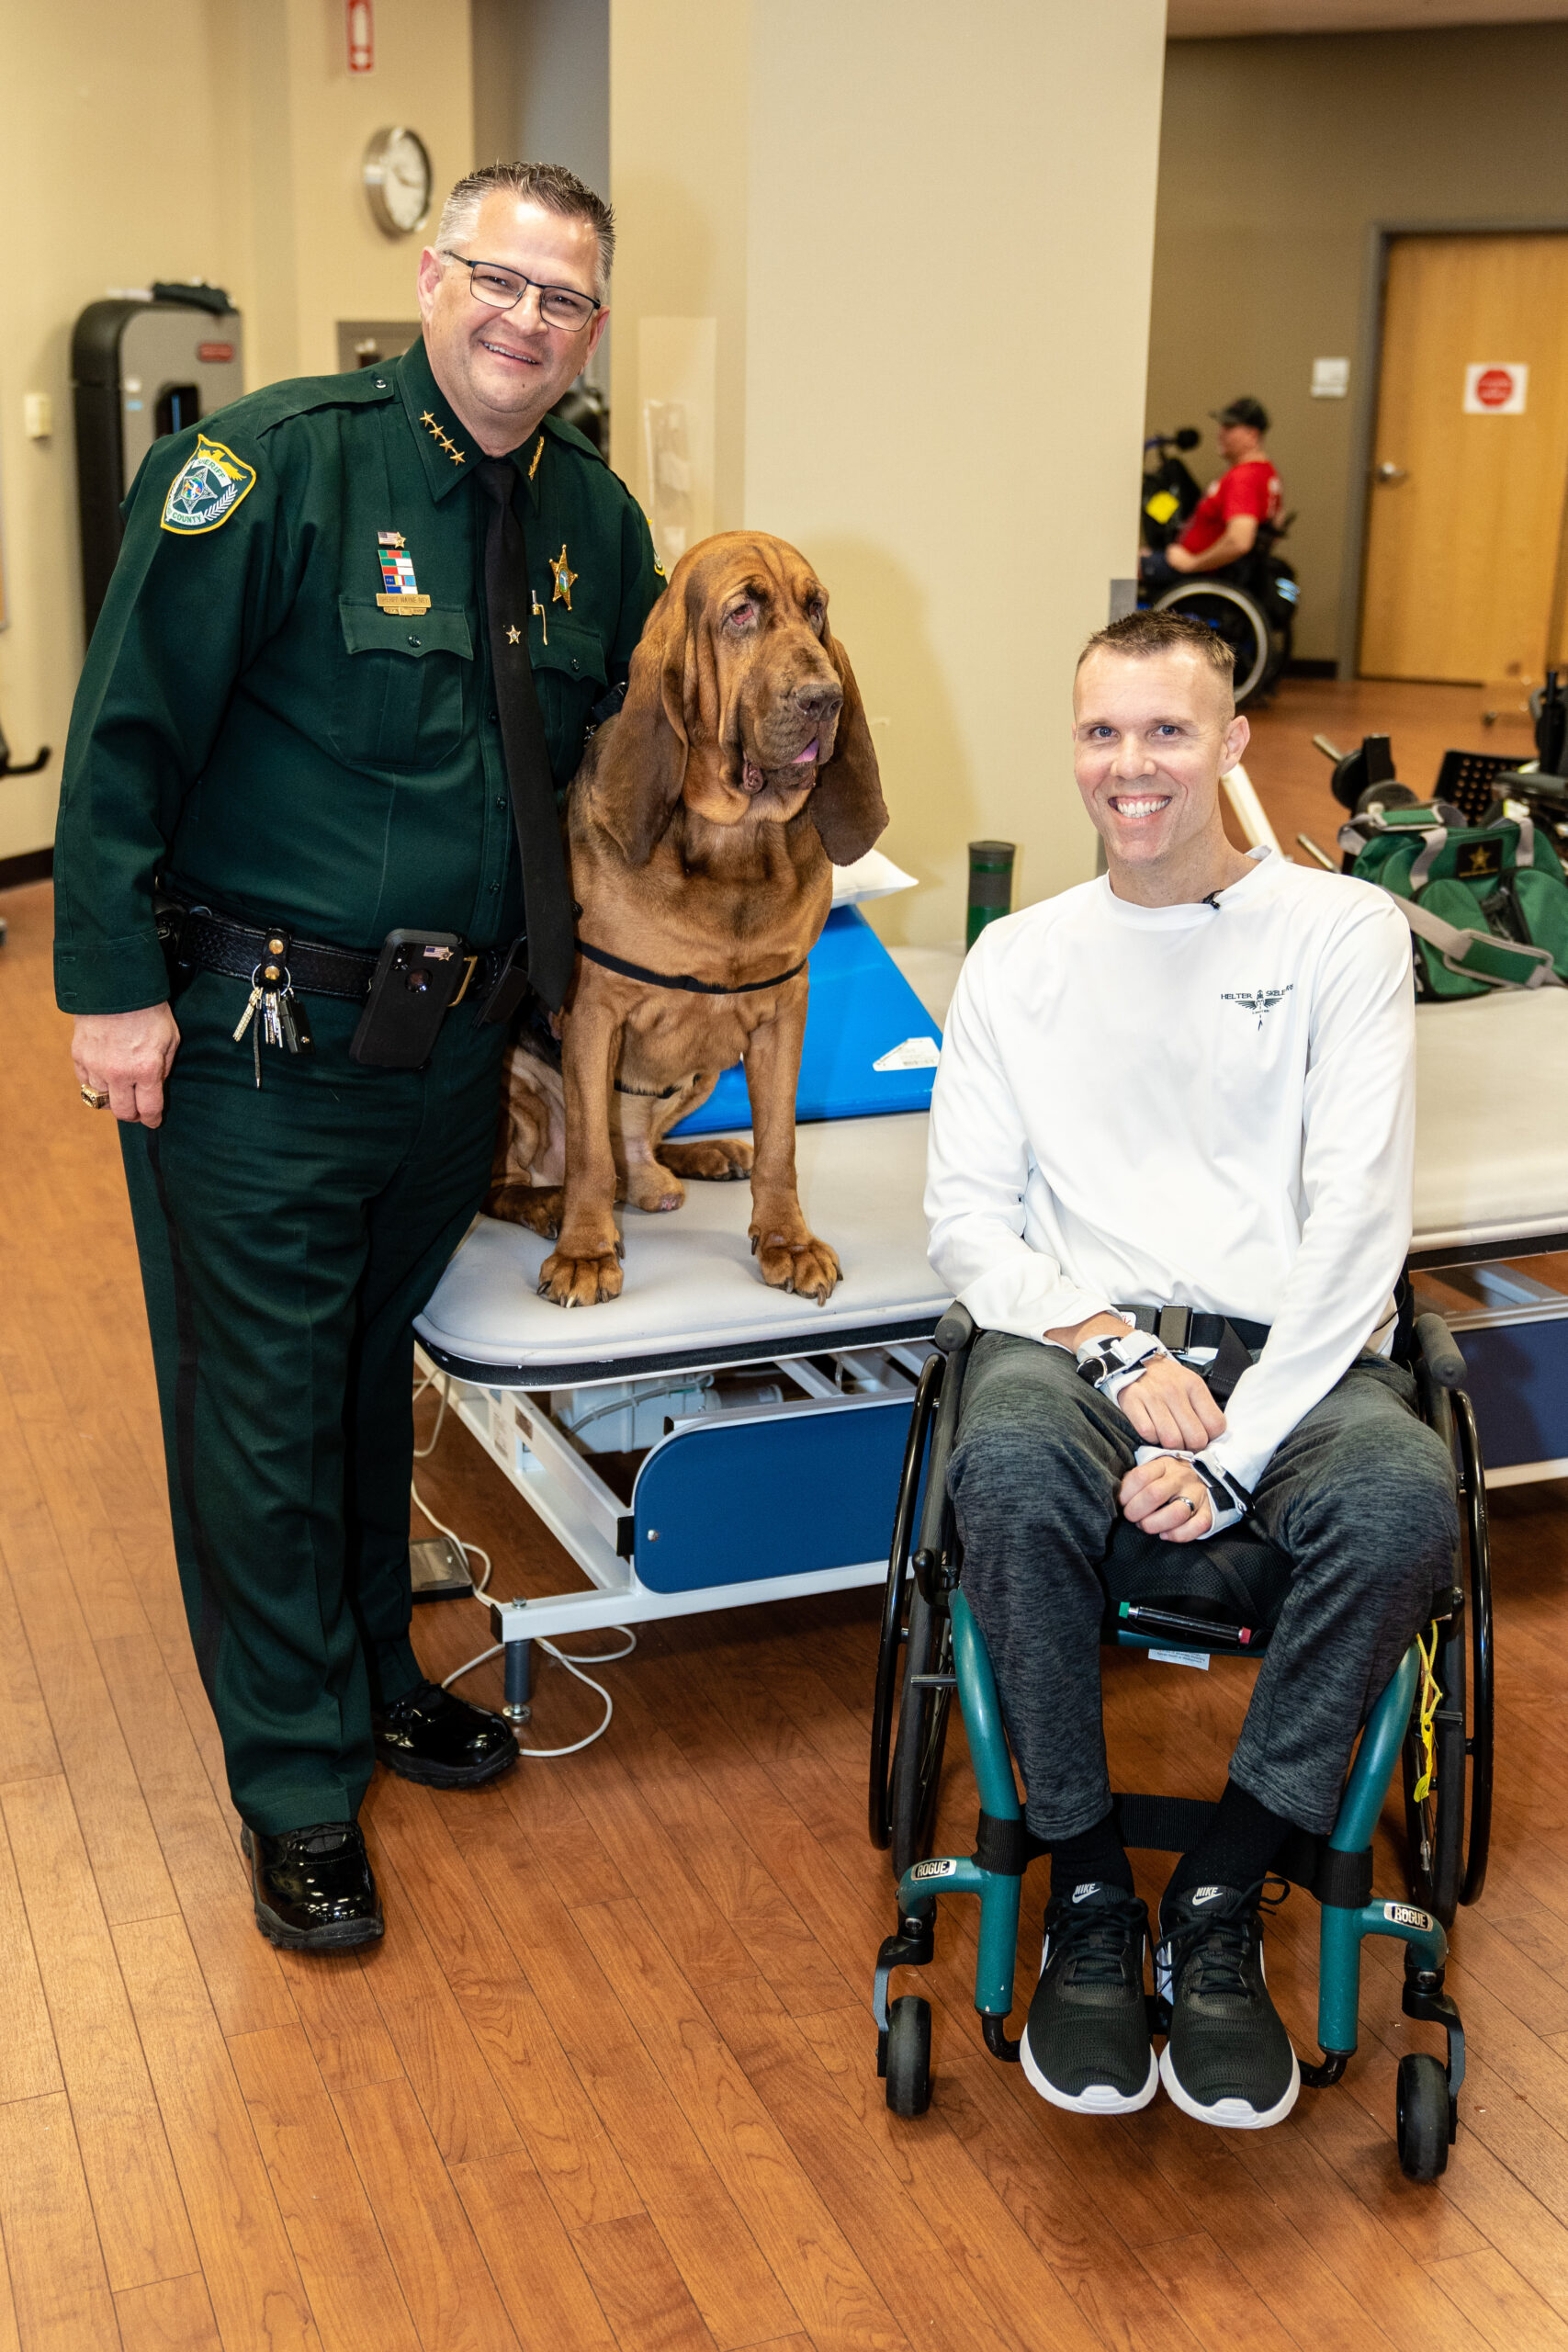 Chris Streiff with Sheriff and K9 at Brooks Rehabilitation Hospital